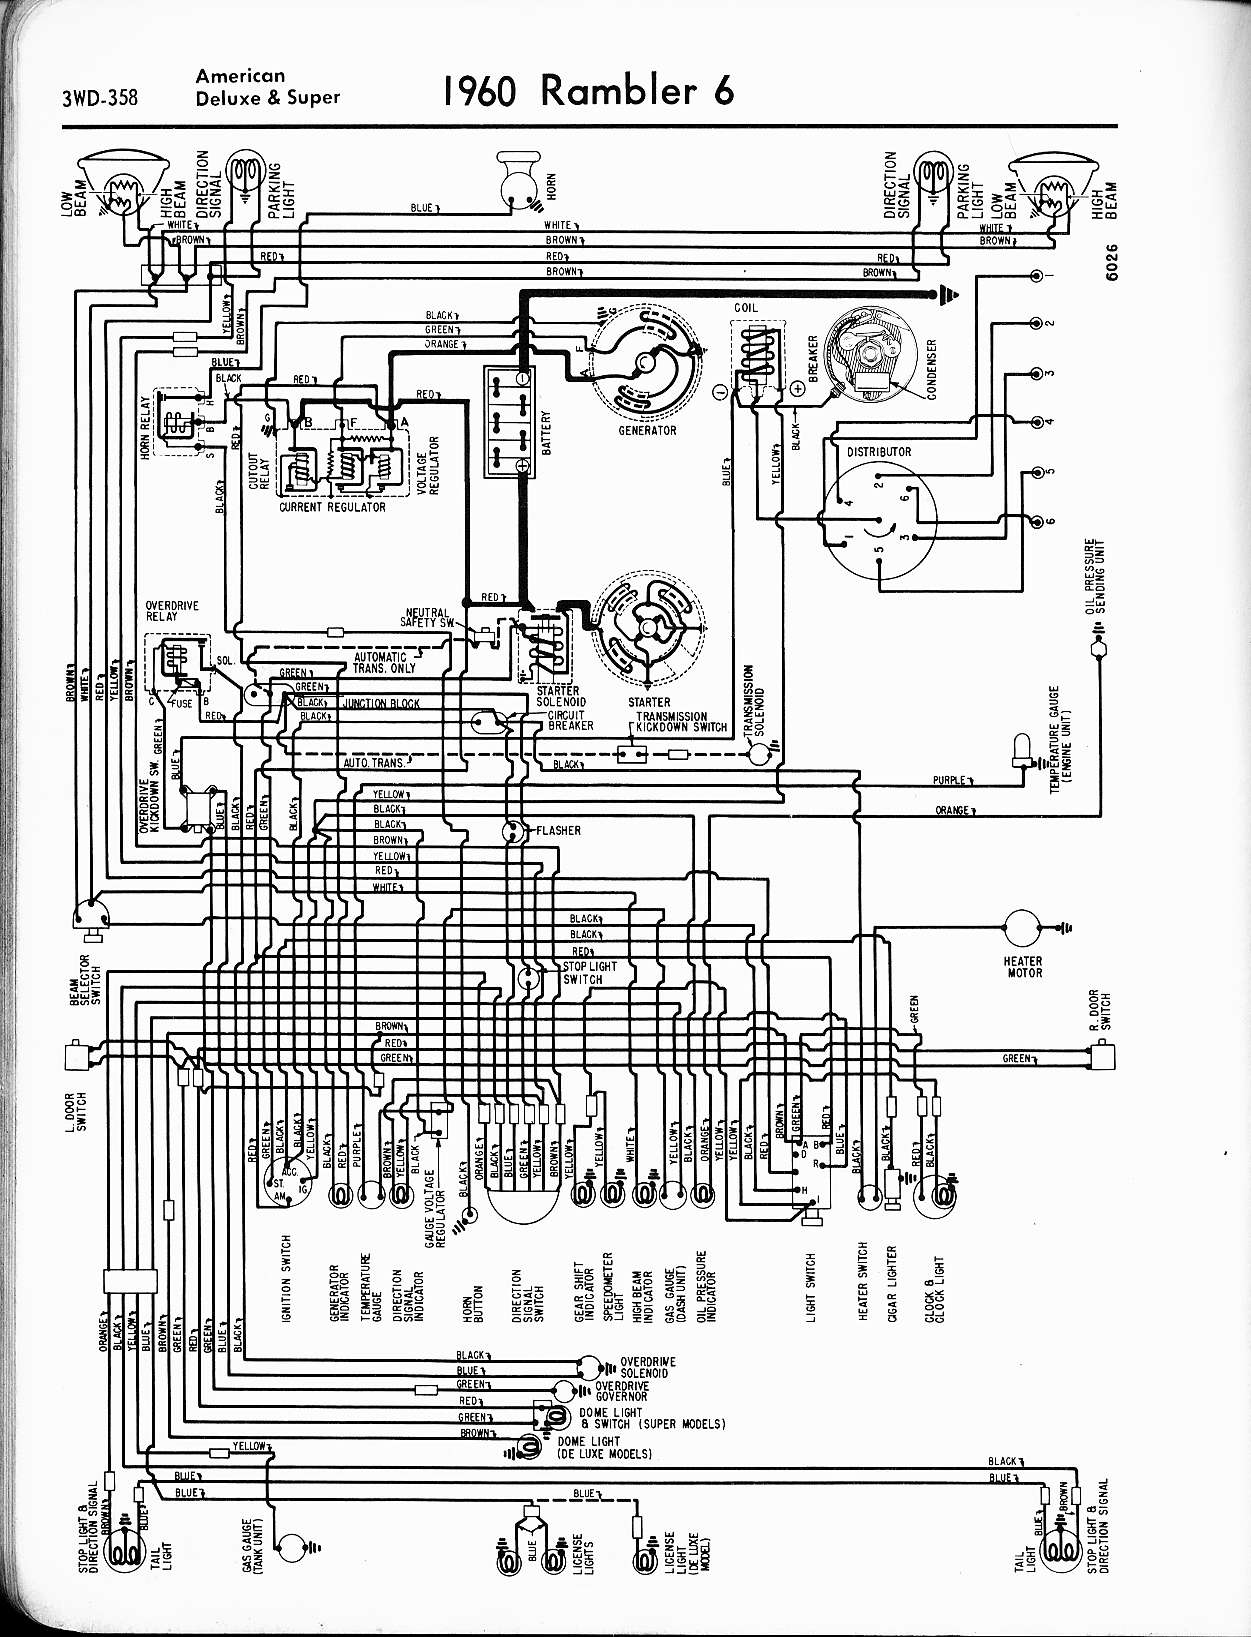 Car Diagrams 1961 Cadillac Wiring Diagram 1967 Plymouth Auto Related With